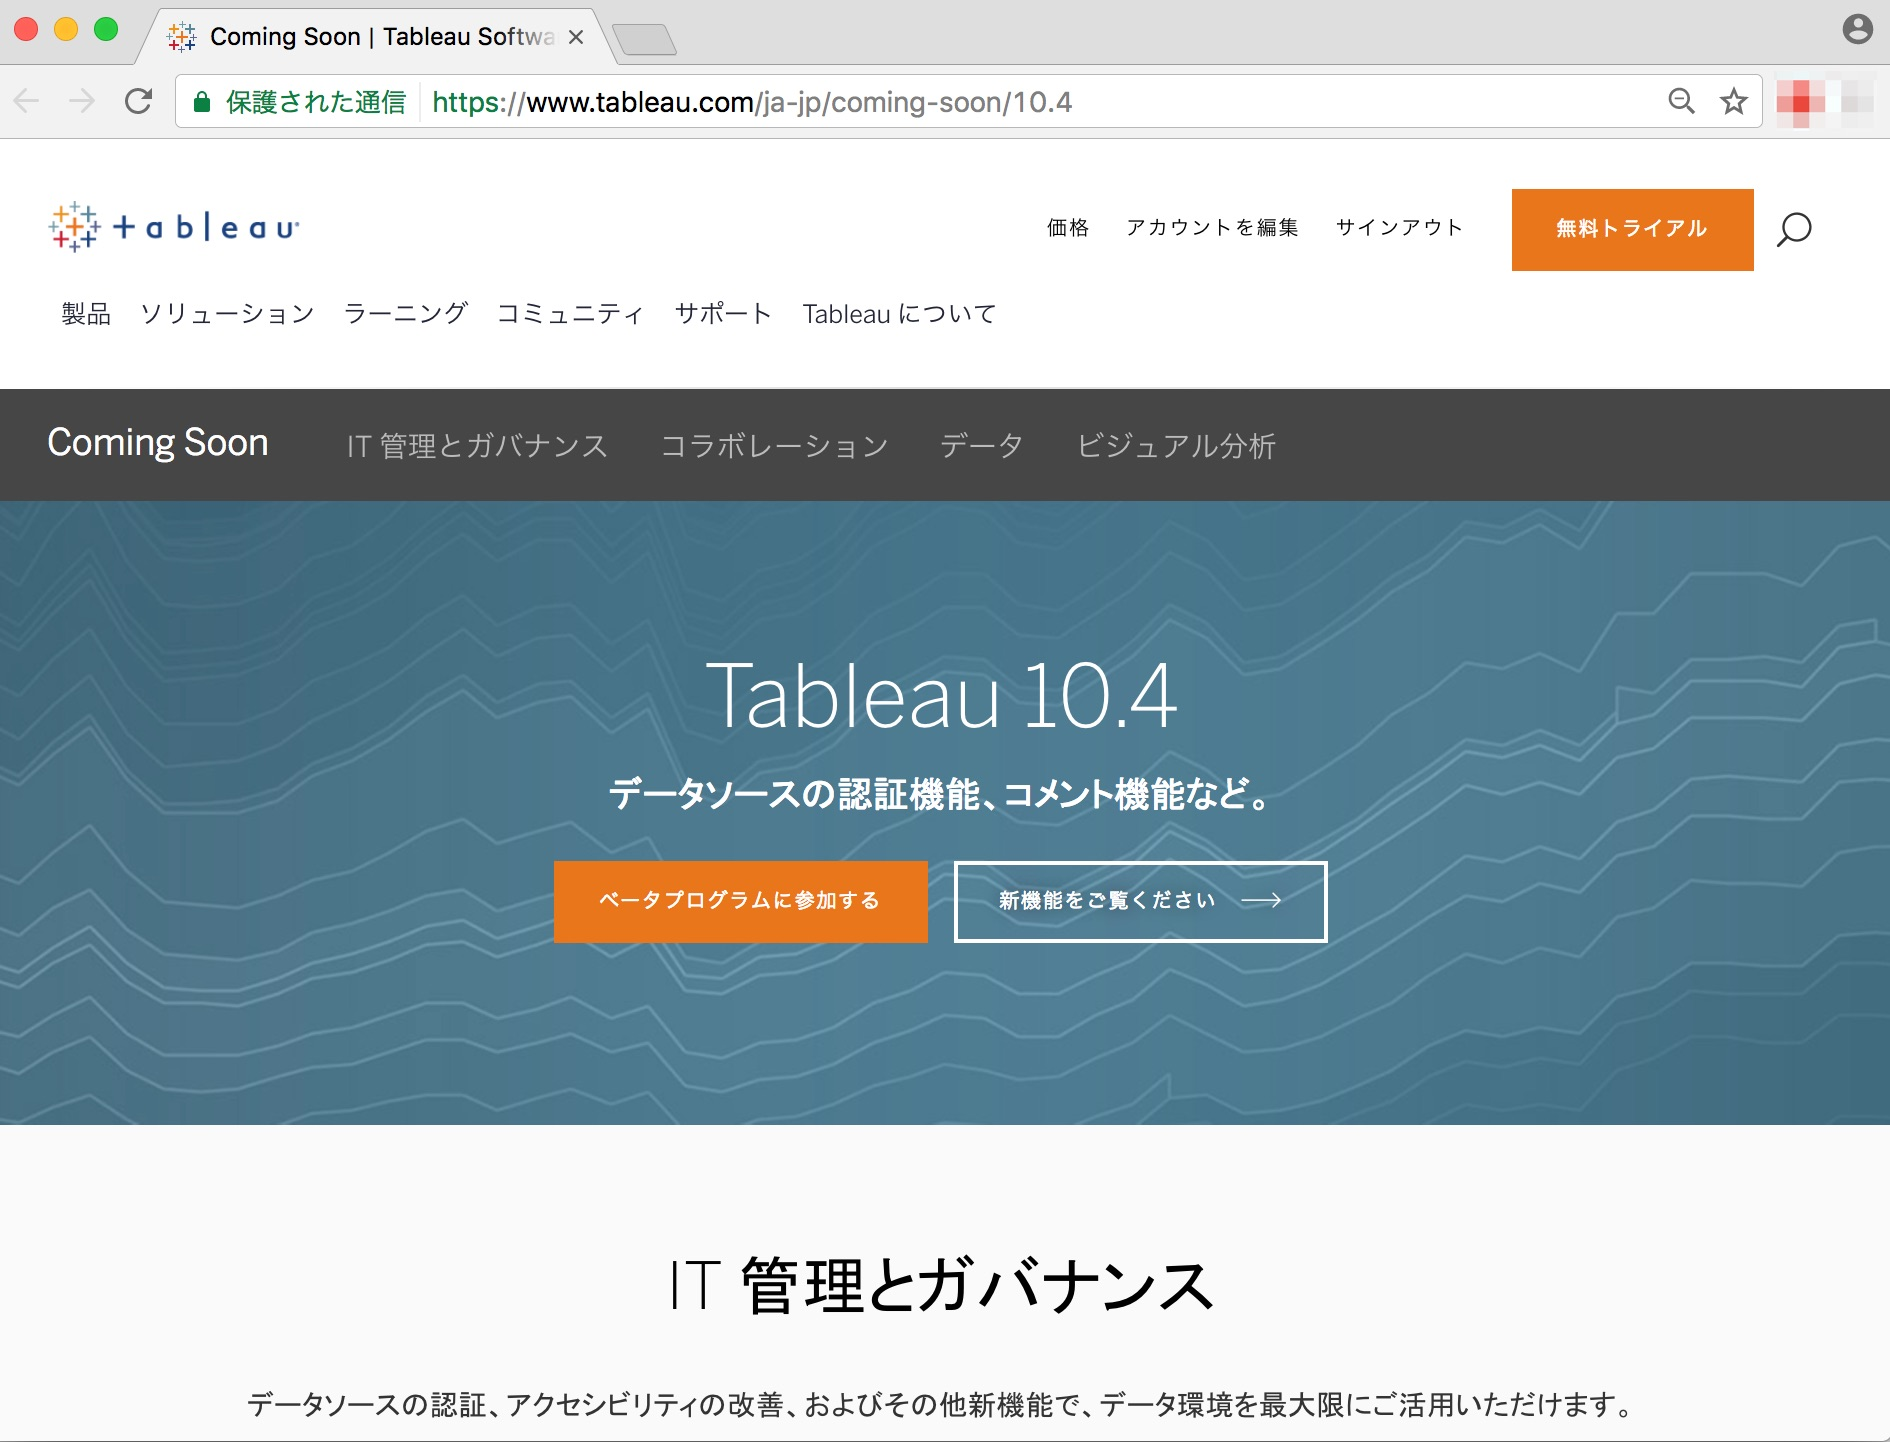 tableau-104-is-comming-soon